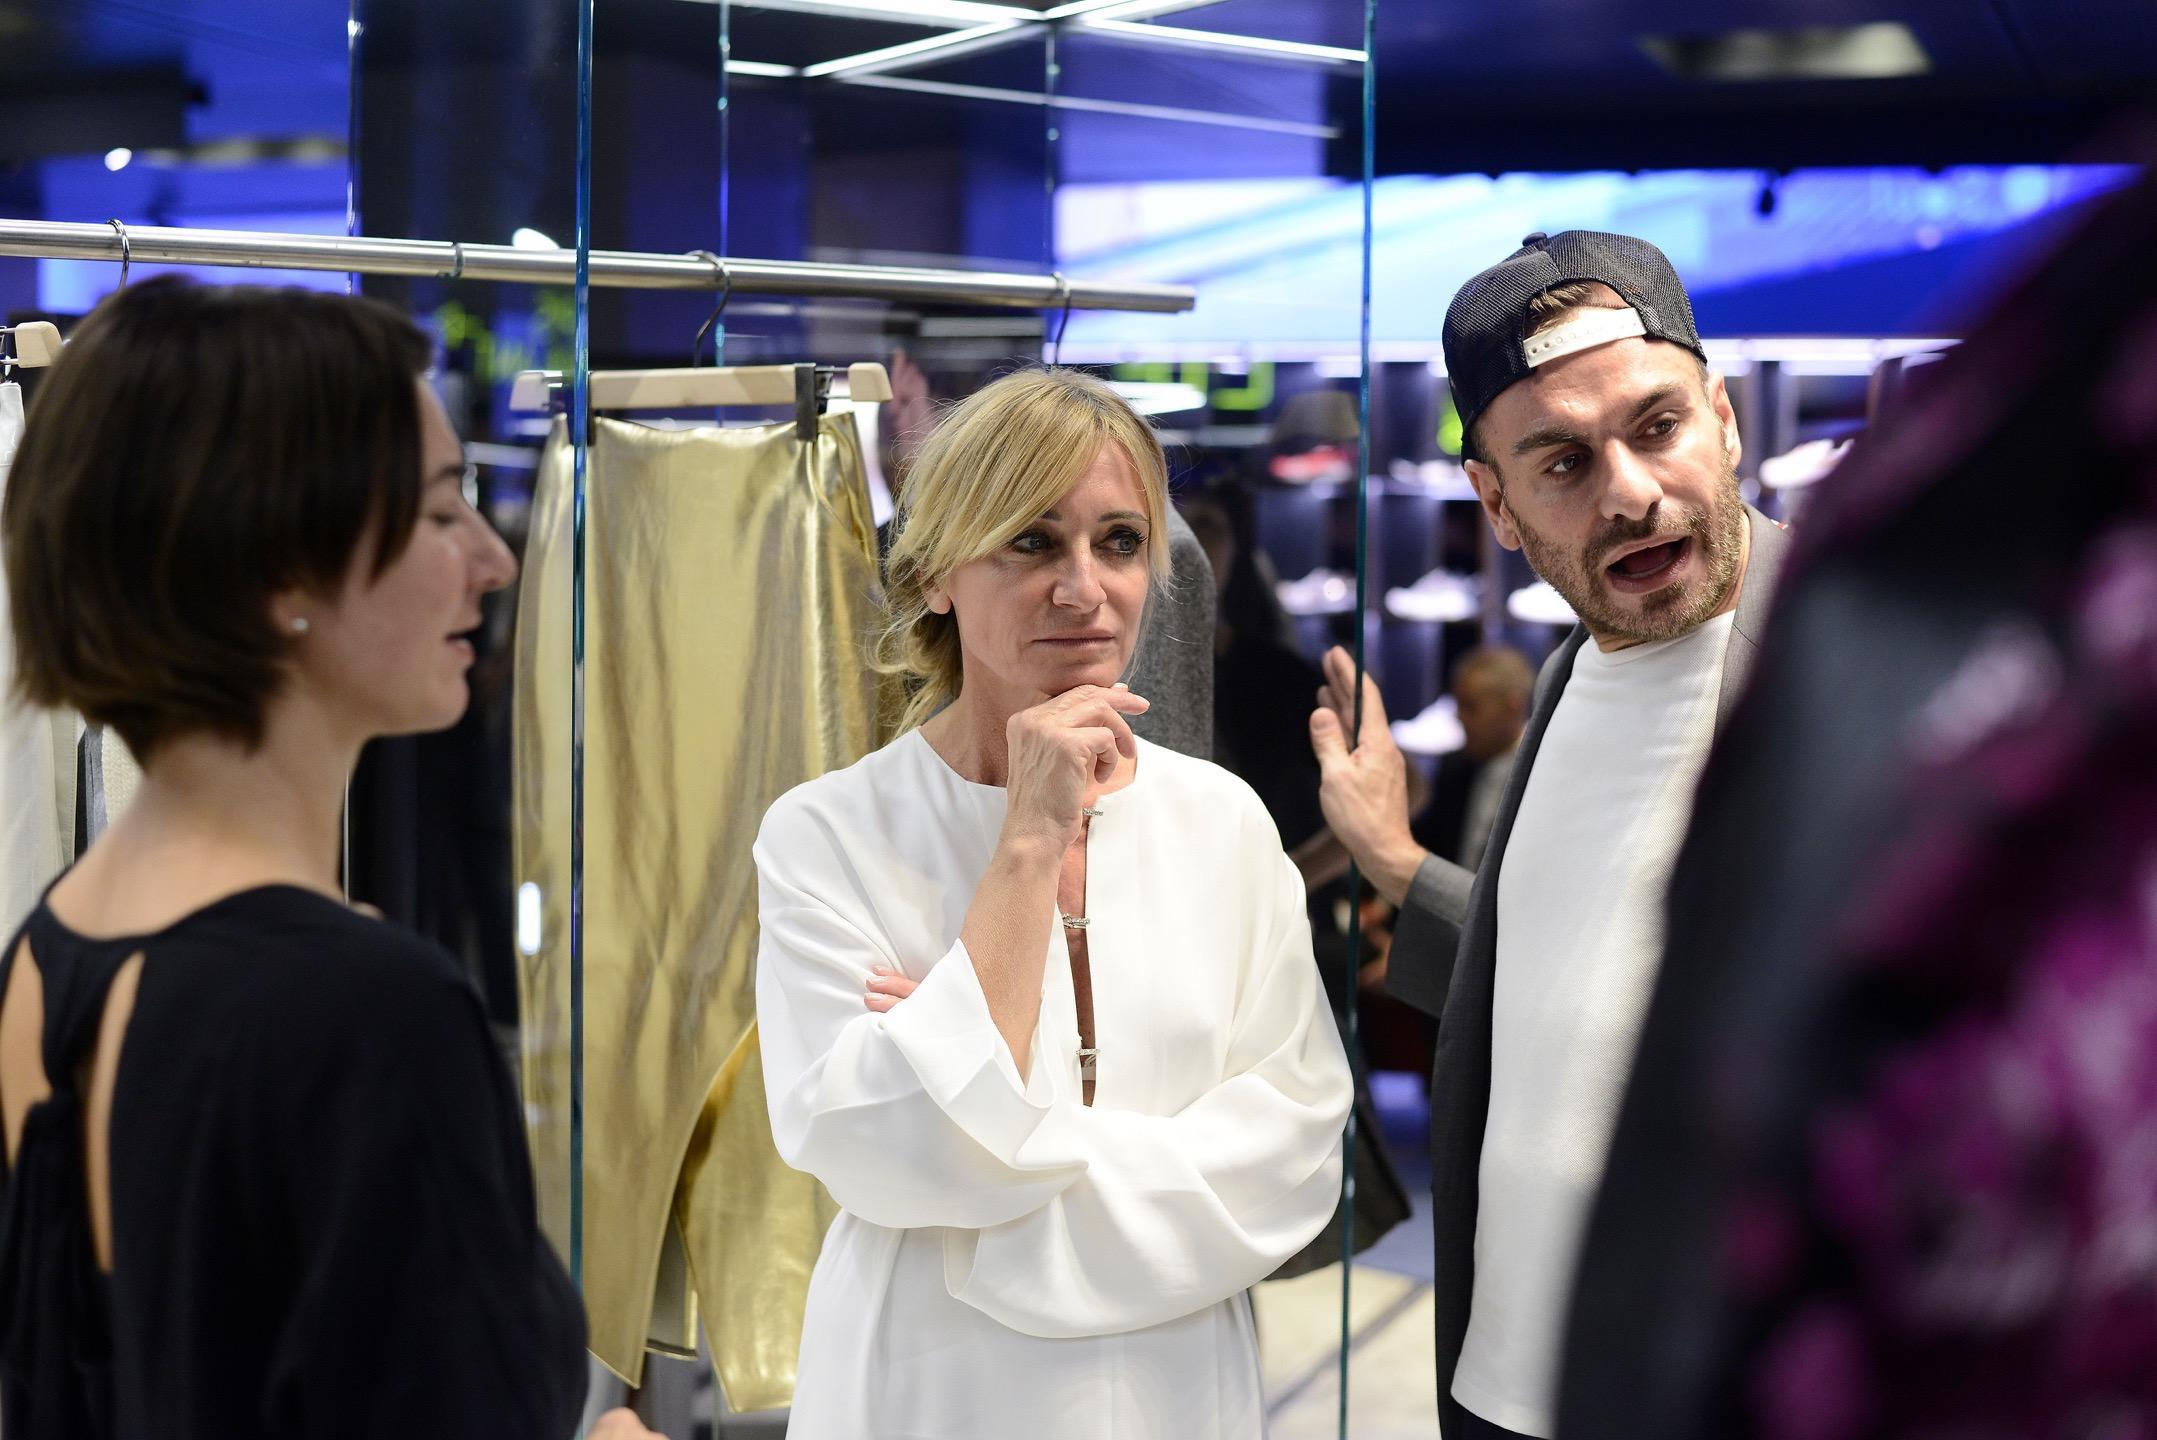 Seoul's 10 Soul Pop up store at Antonia Excelsior